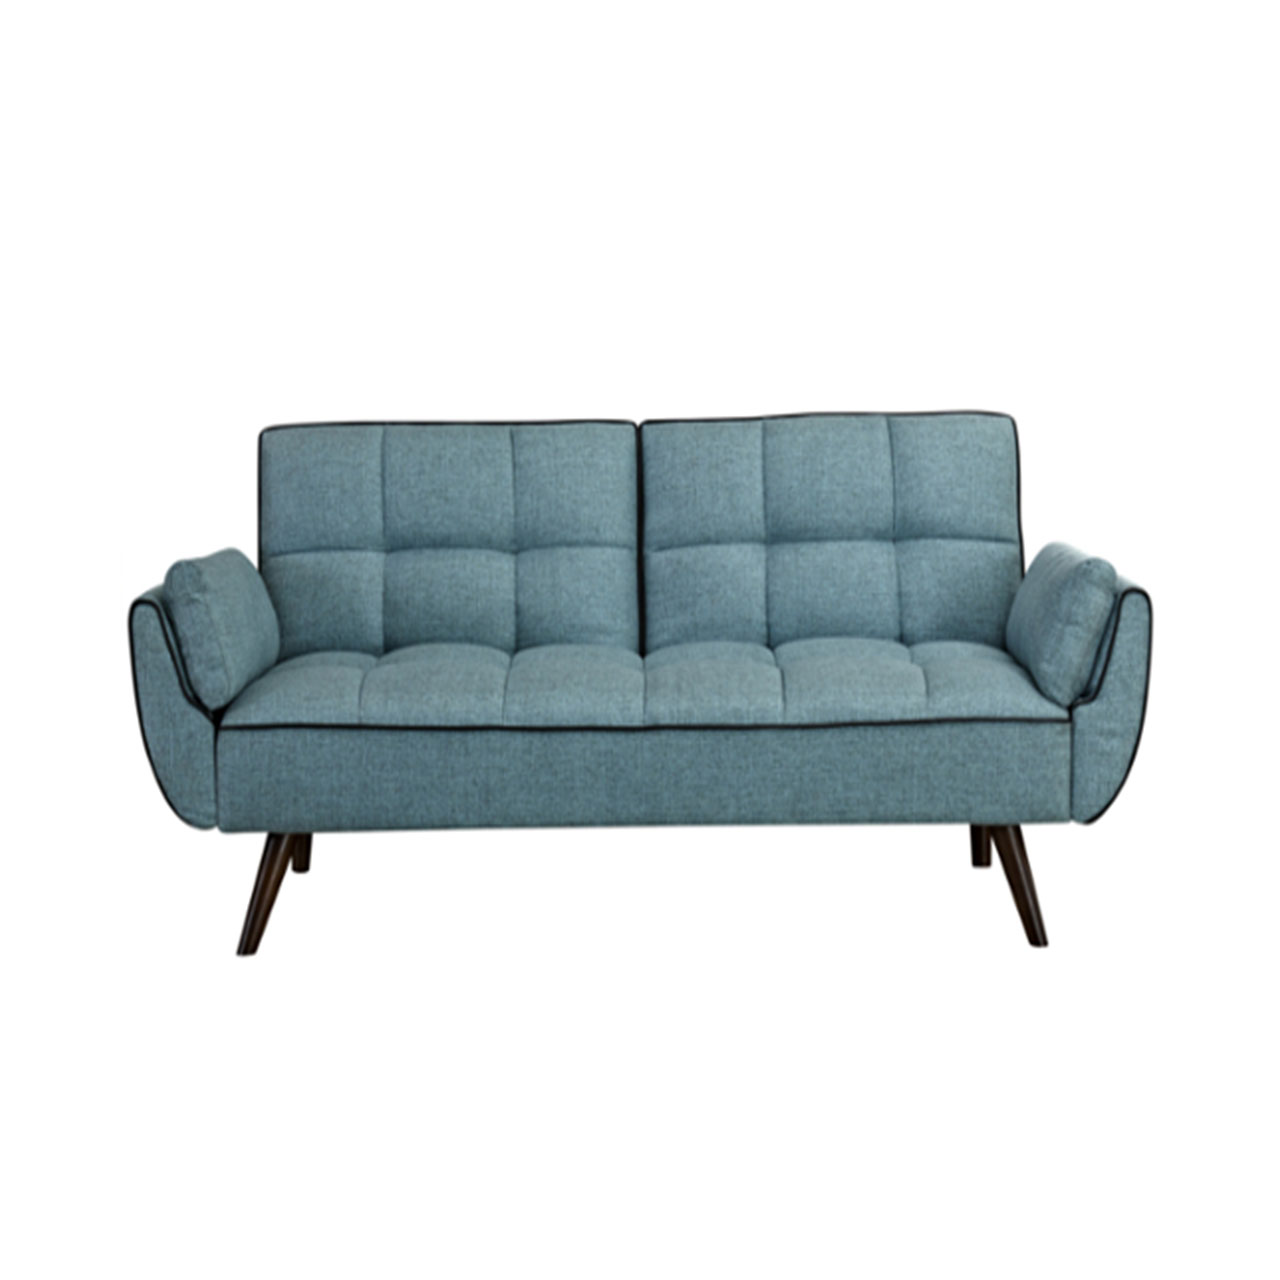 Sofa Manila Philippines Teal Sofa Bed Casual Contemporary Turquoise Sofa Bed